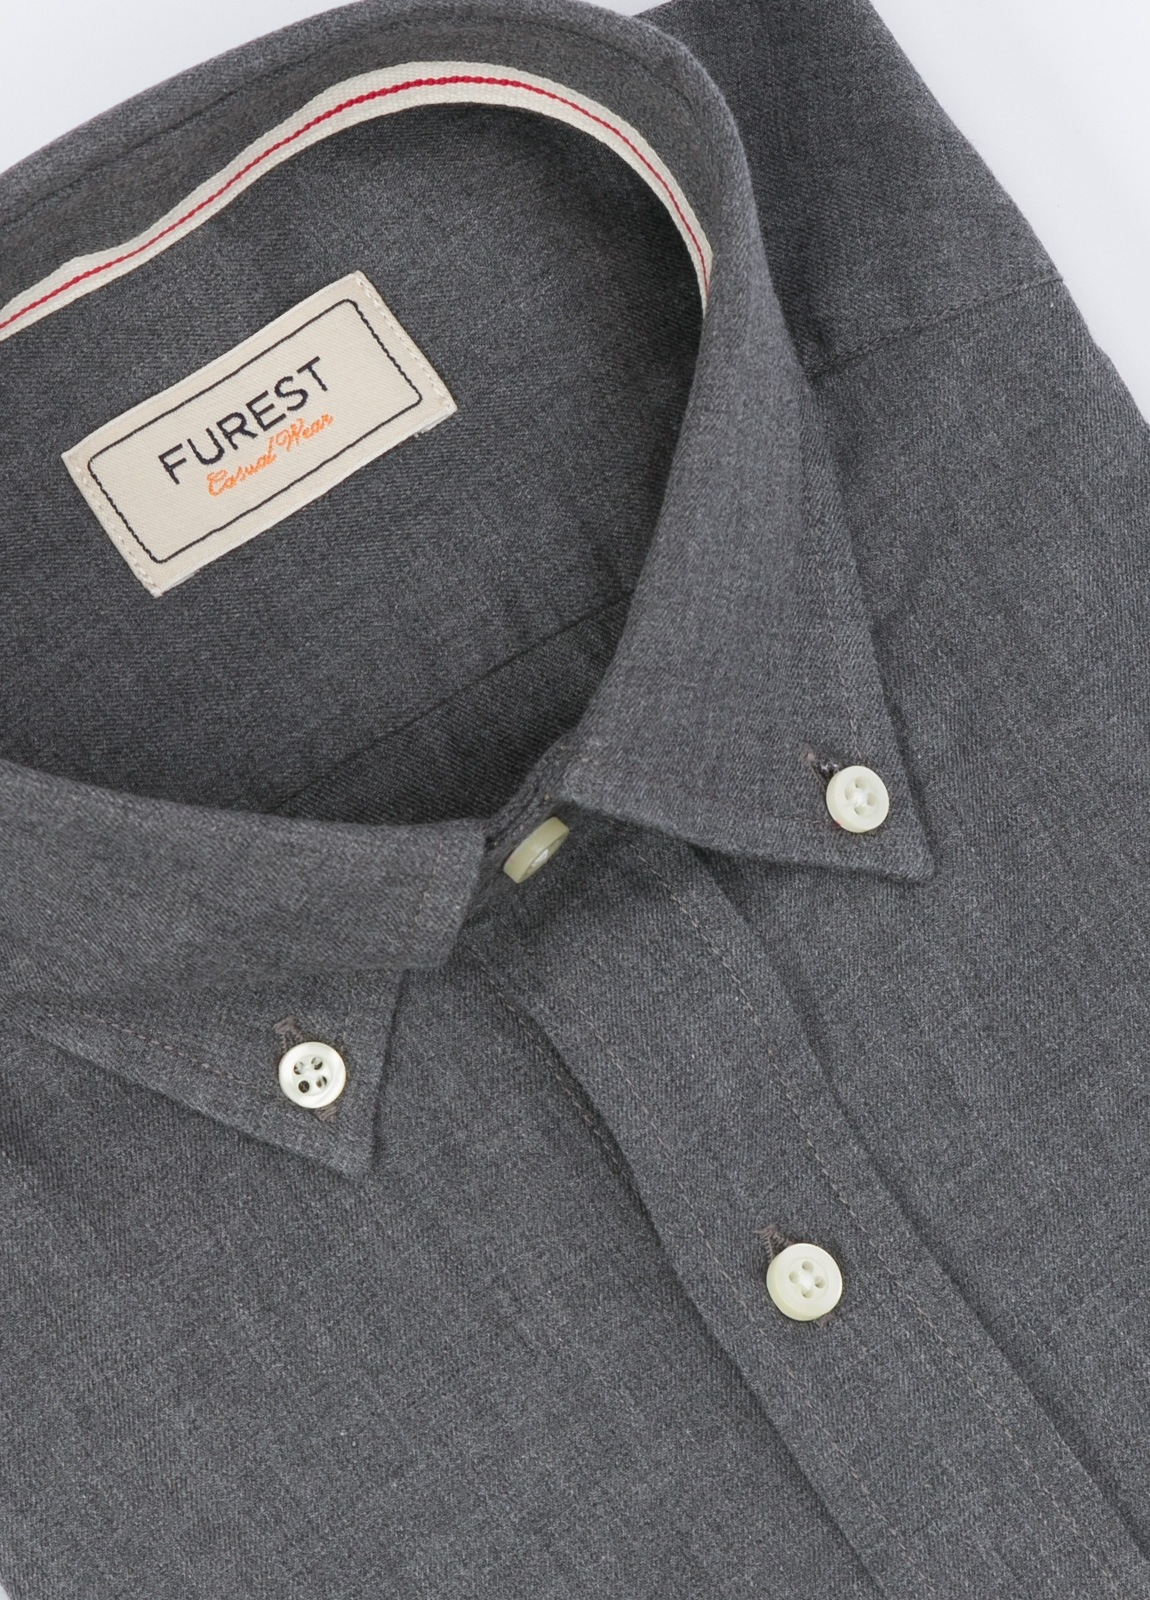 Camisa Leisure Wear SLIM Botón Down, color gris. 100% Algodón. - Ítem1